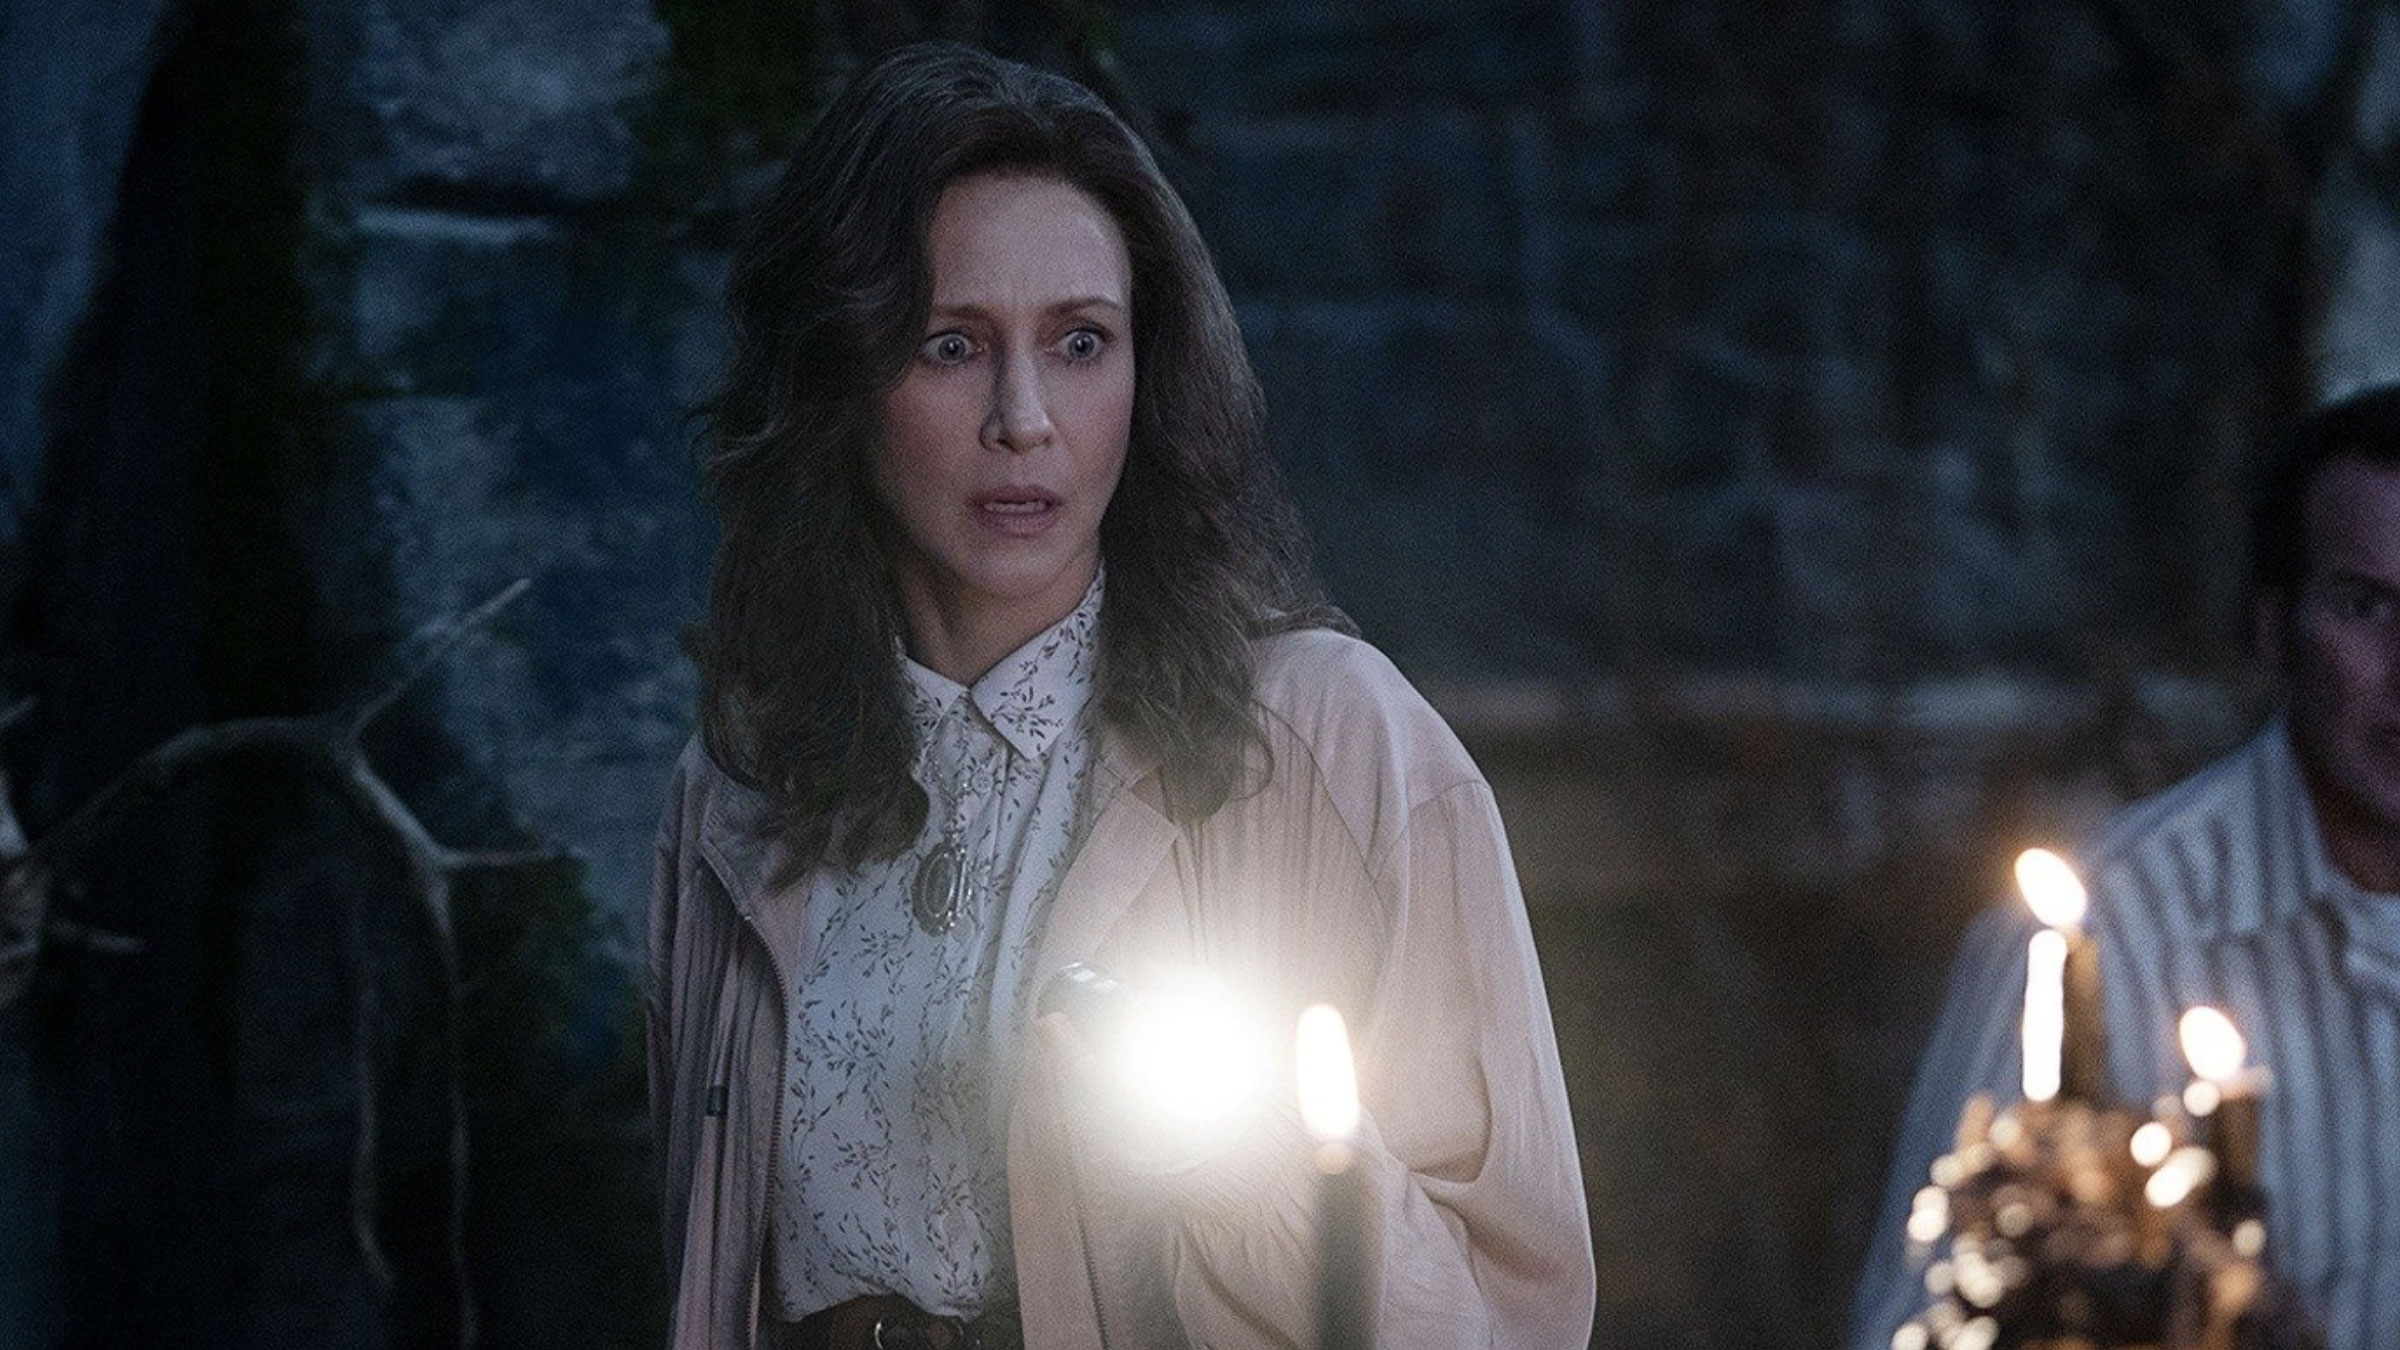 The Conjuring: The Devil Made Me Do It (Ultra HD 4K Blu-ray)